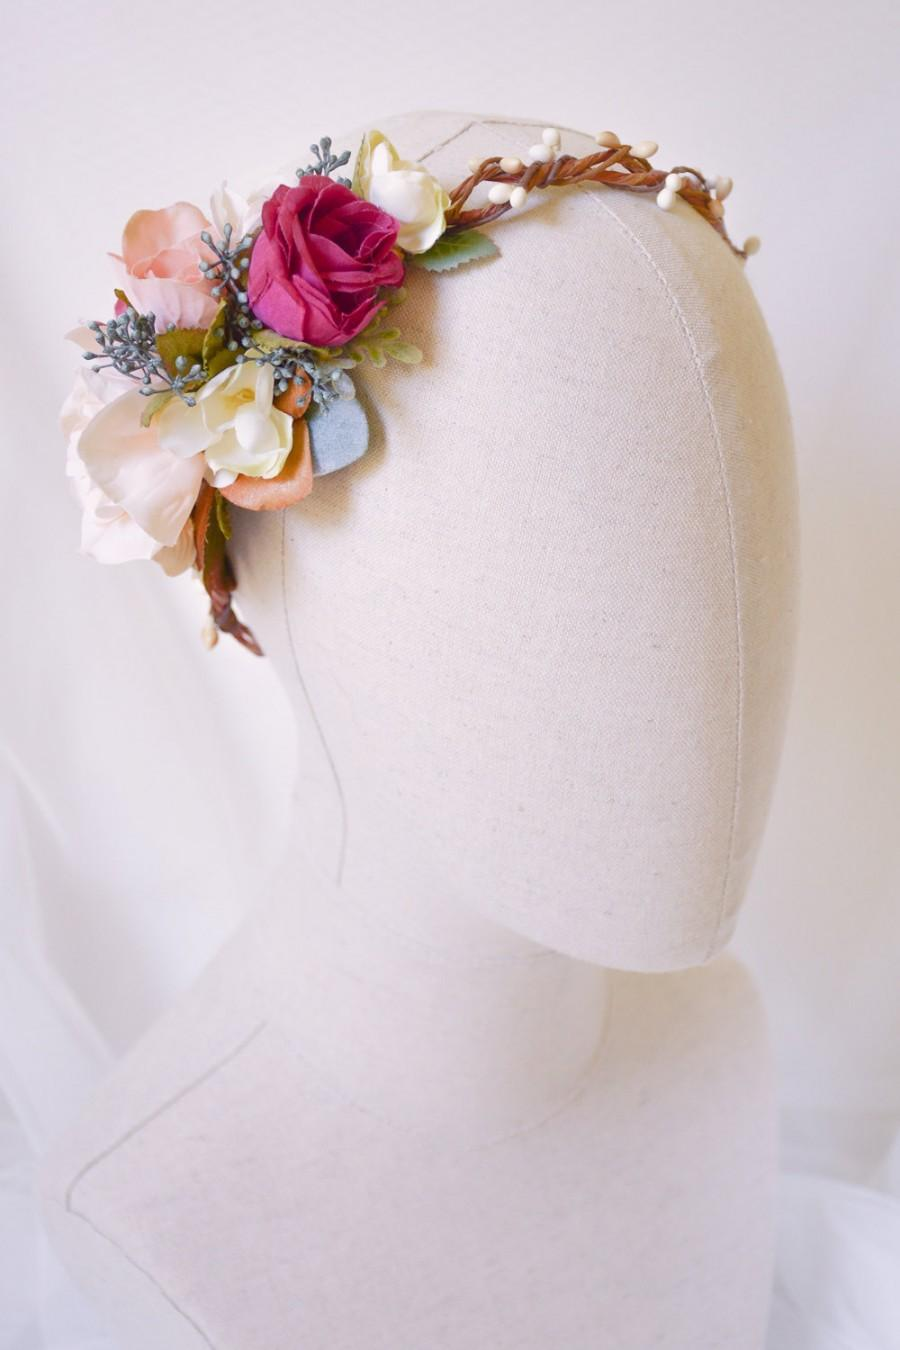 Flower crown bridal floral crown floral headband rose crown flower crown bridal floral crown floral headband rose crown flower headpiece flower headband bohemian wedding crown manon izmirmasajfo